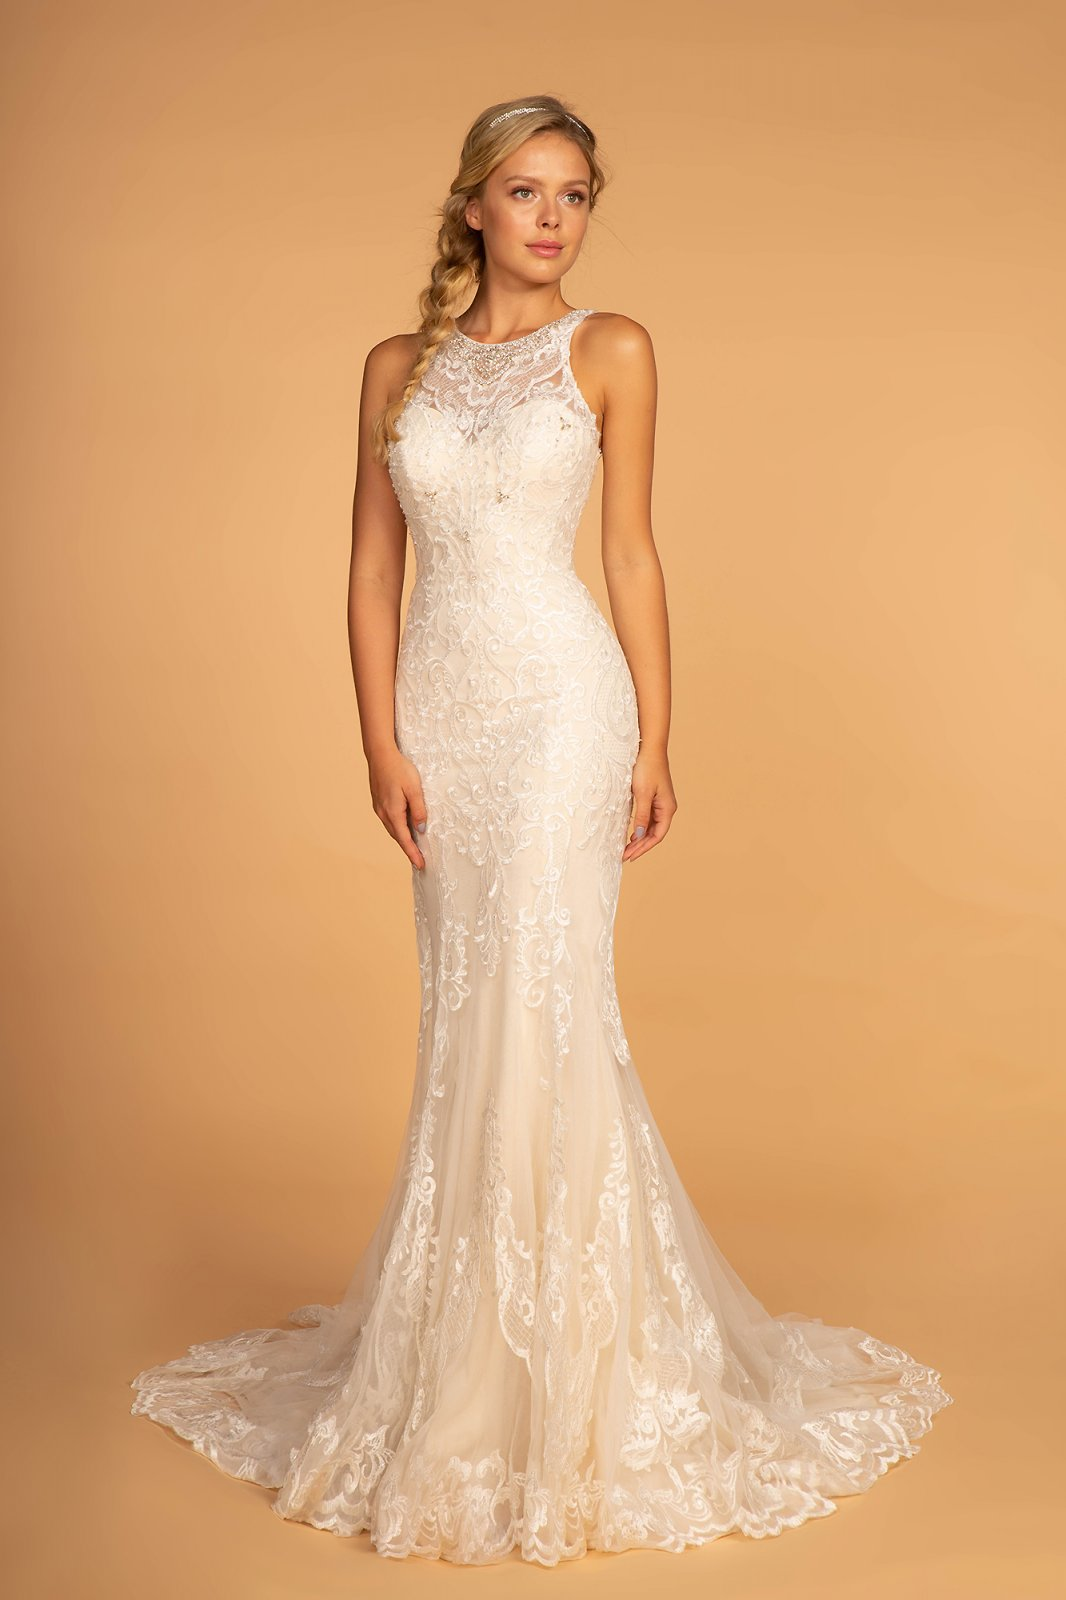 Ivory/Champagne Lace Illusion With Beading Wedding Gown